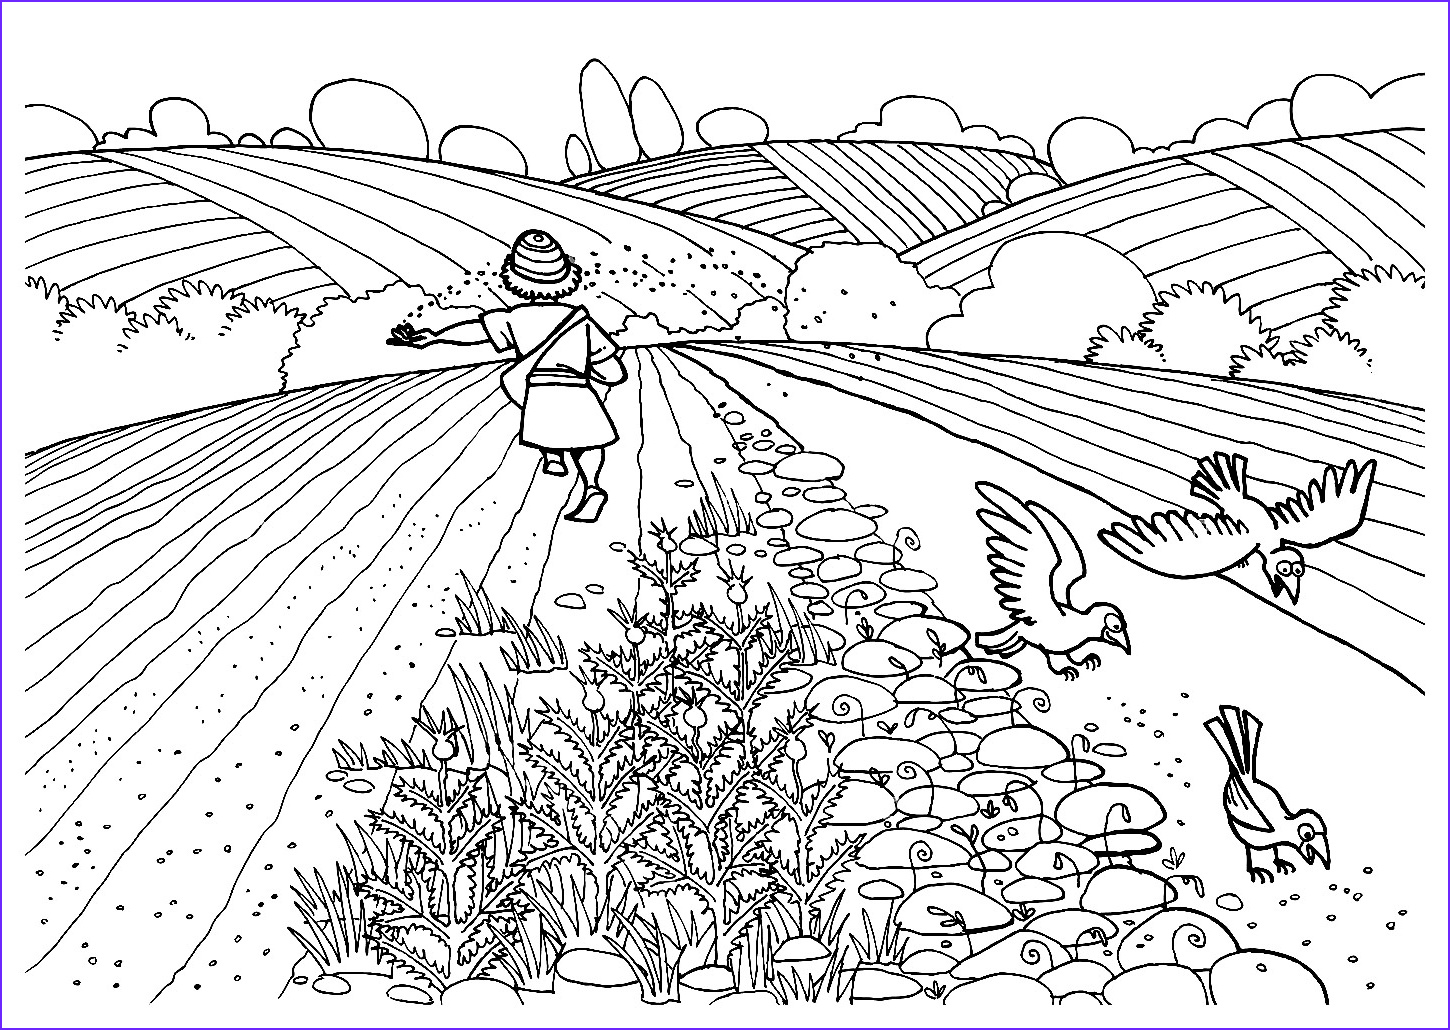 Parable Of the sower Coloring Page New Photos Free Christian Coloring Pages the Parables